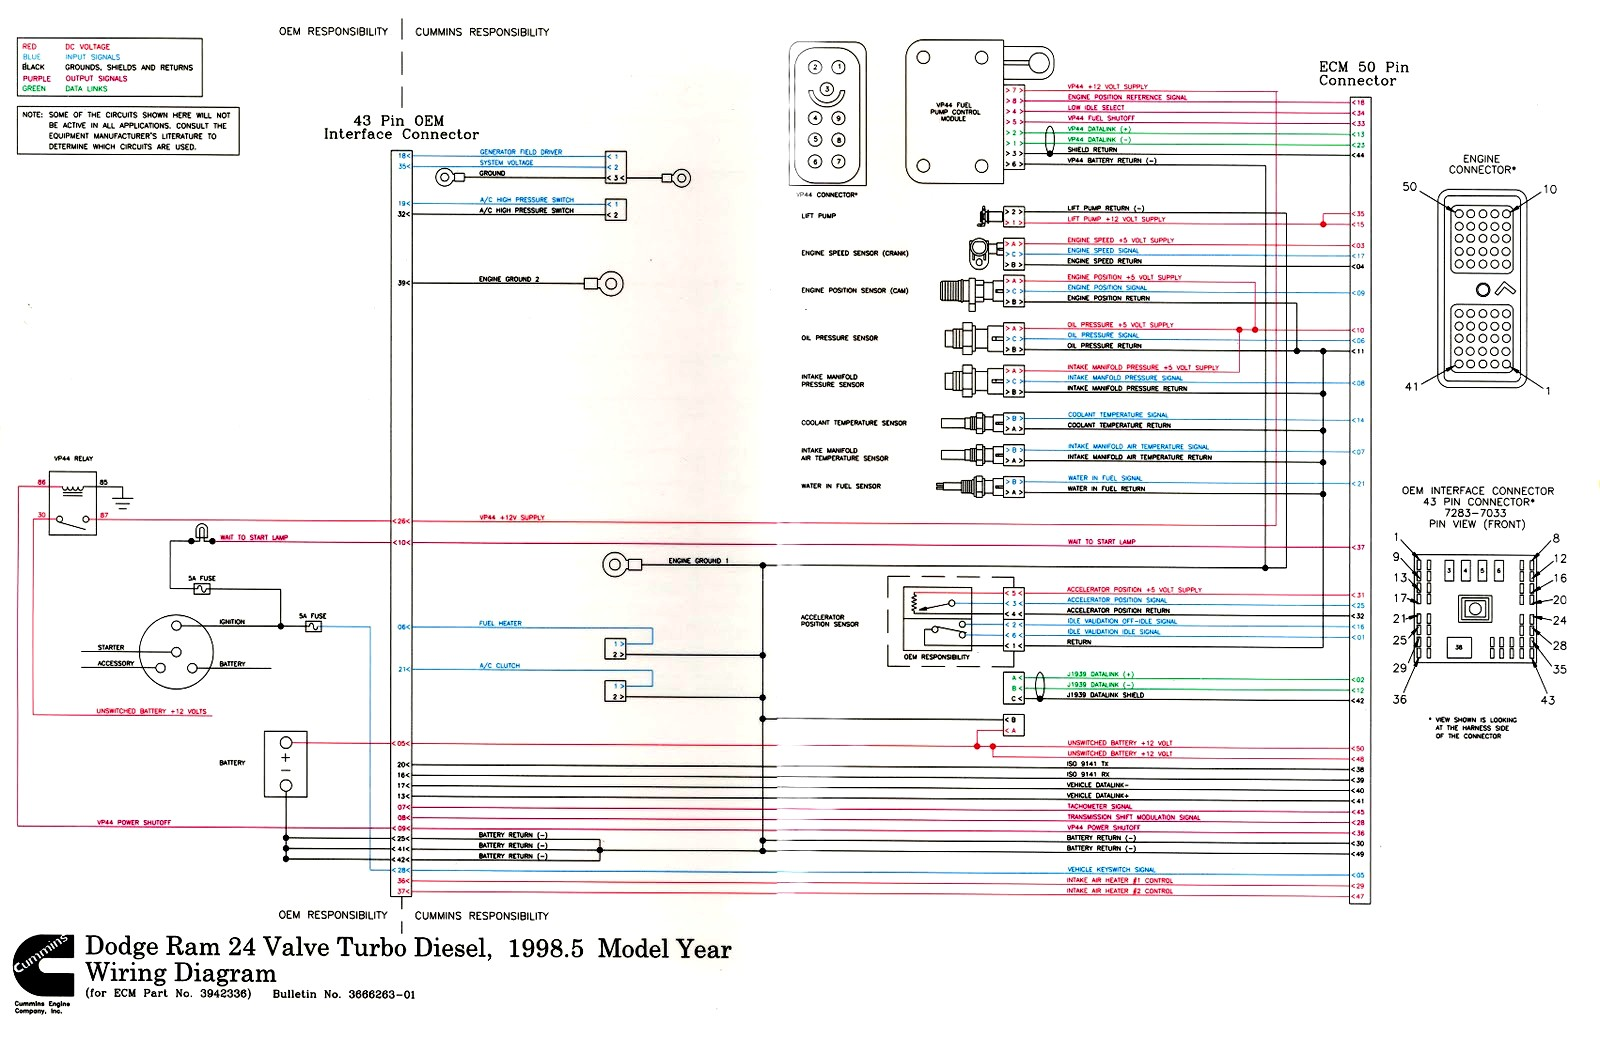 Cool kenworth wiring diagram contemporary electrical and wiring kenworth t660 wiring diagram dolgular asfbconference2016 Choice Image